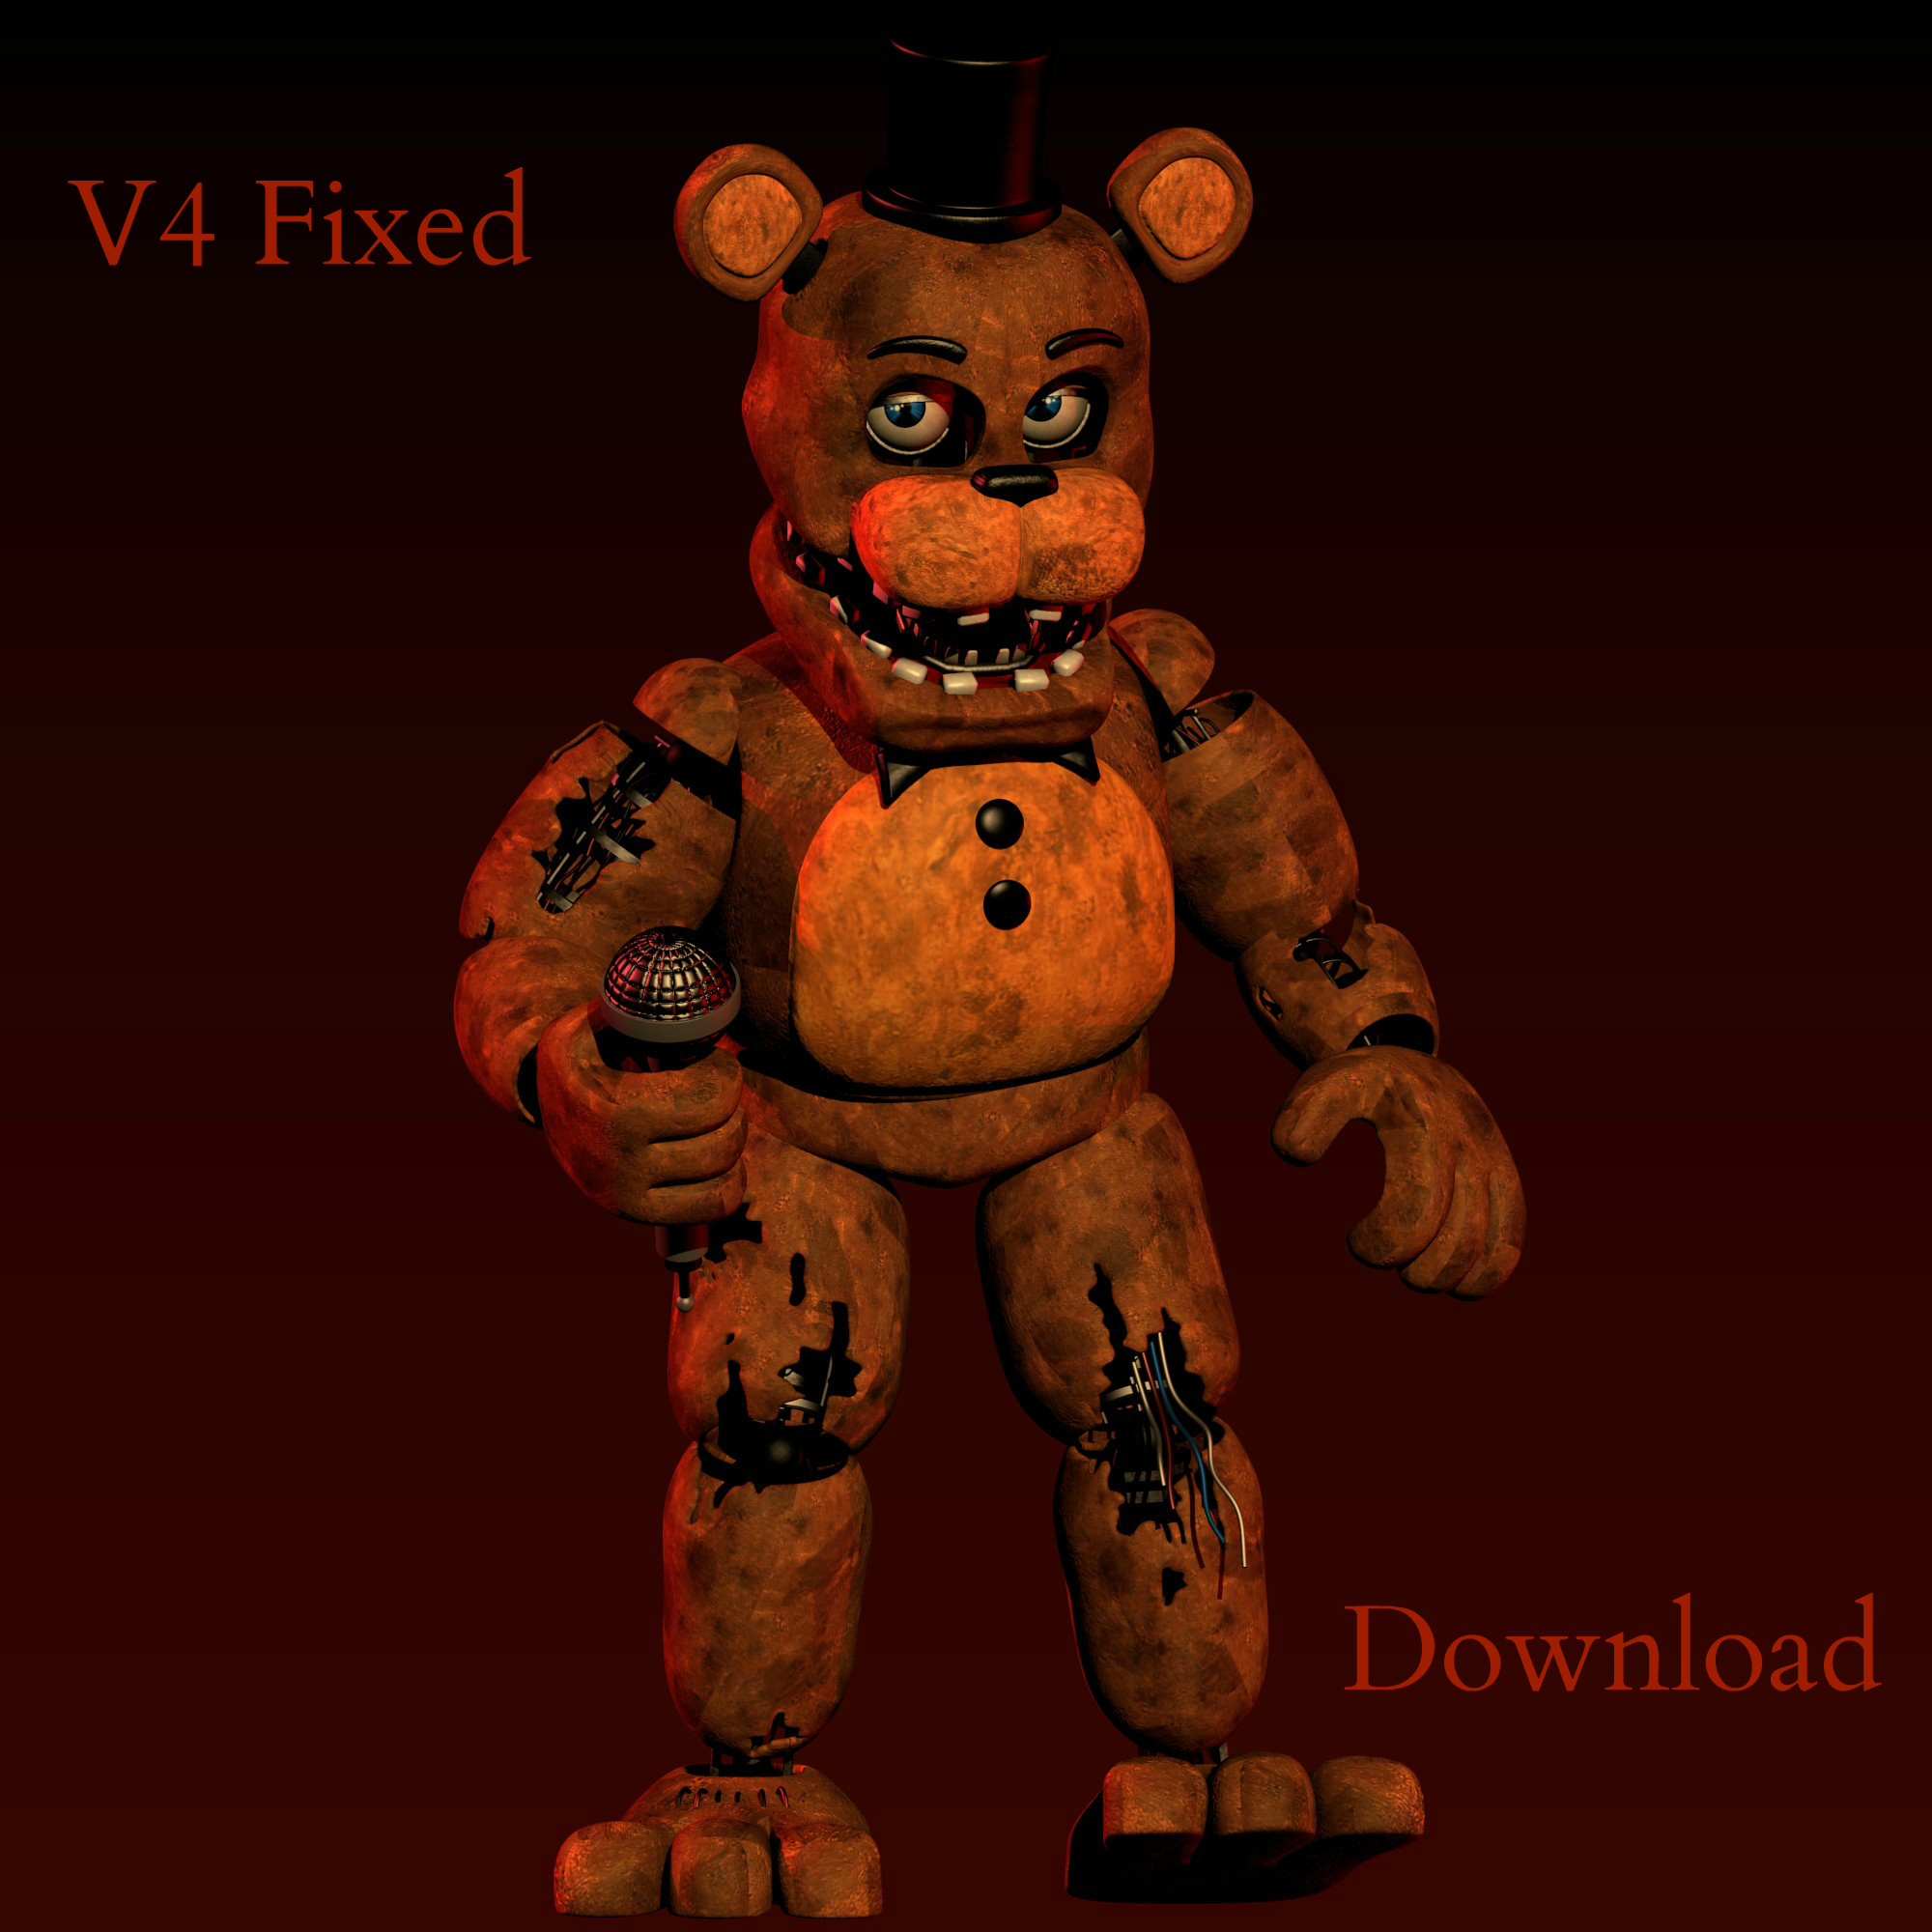 Withered Freddy V4 FIXED [DOWNLOAD] By CoolioArt On DeviantArt